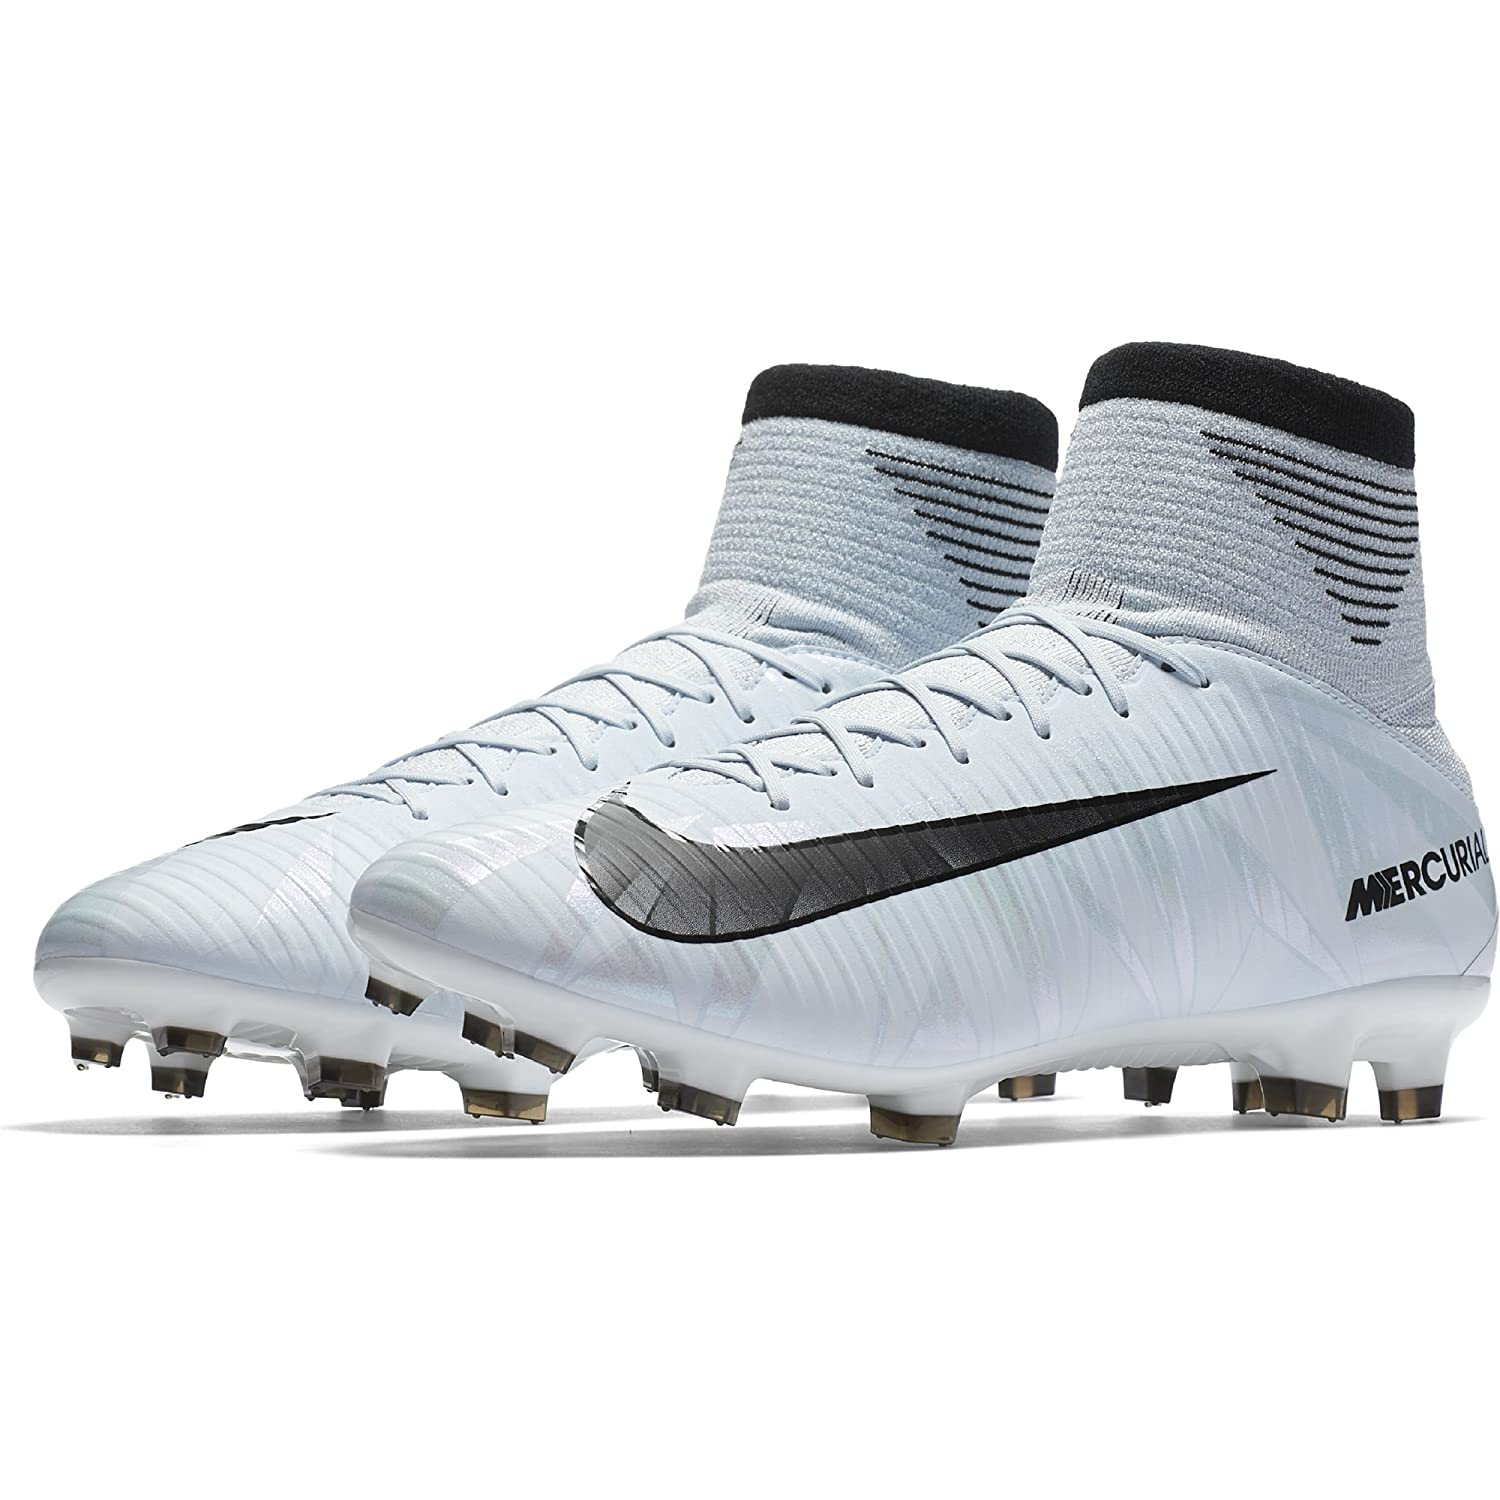 Obediencia tumor Activo  Buy Nike Men's Mercurial Veloce III DF FG Soccer Cleat (SZ. 8.5) Blue Tint,  White at Amazon.in